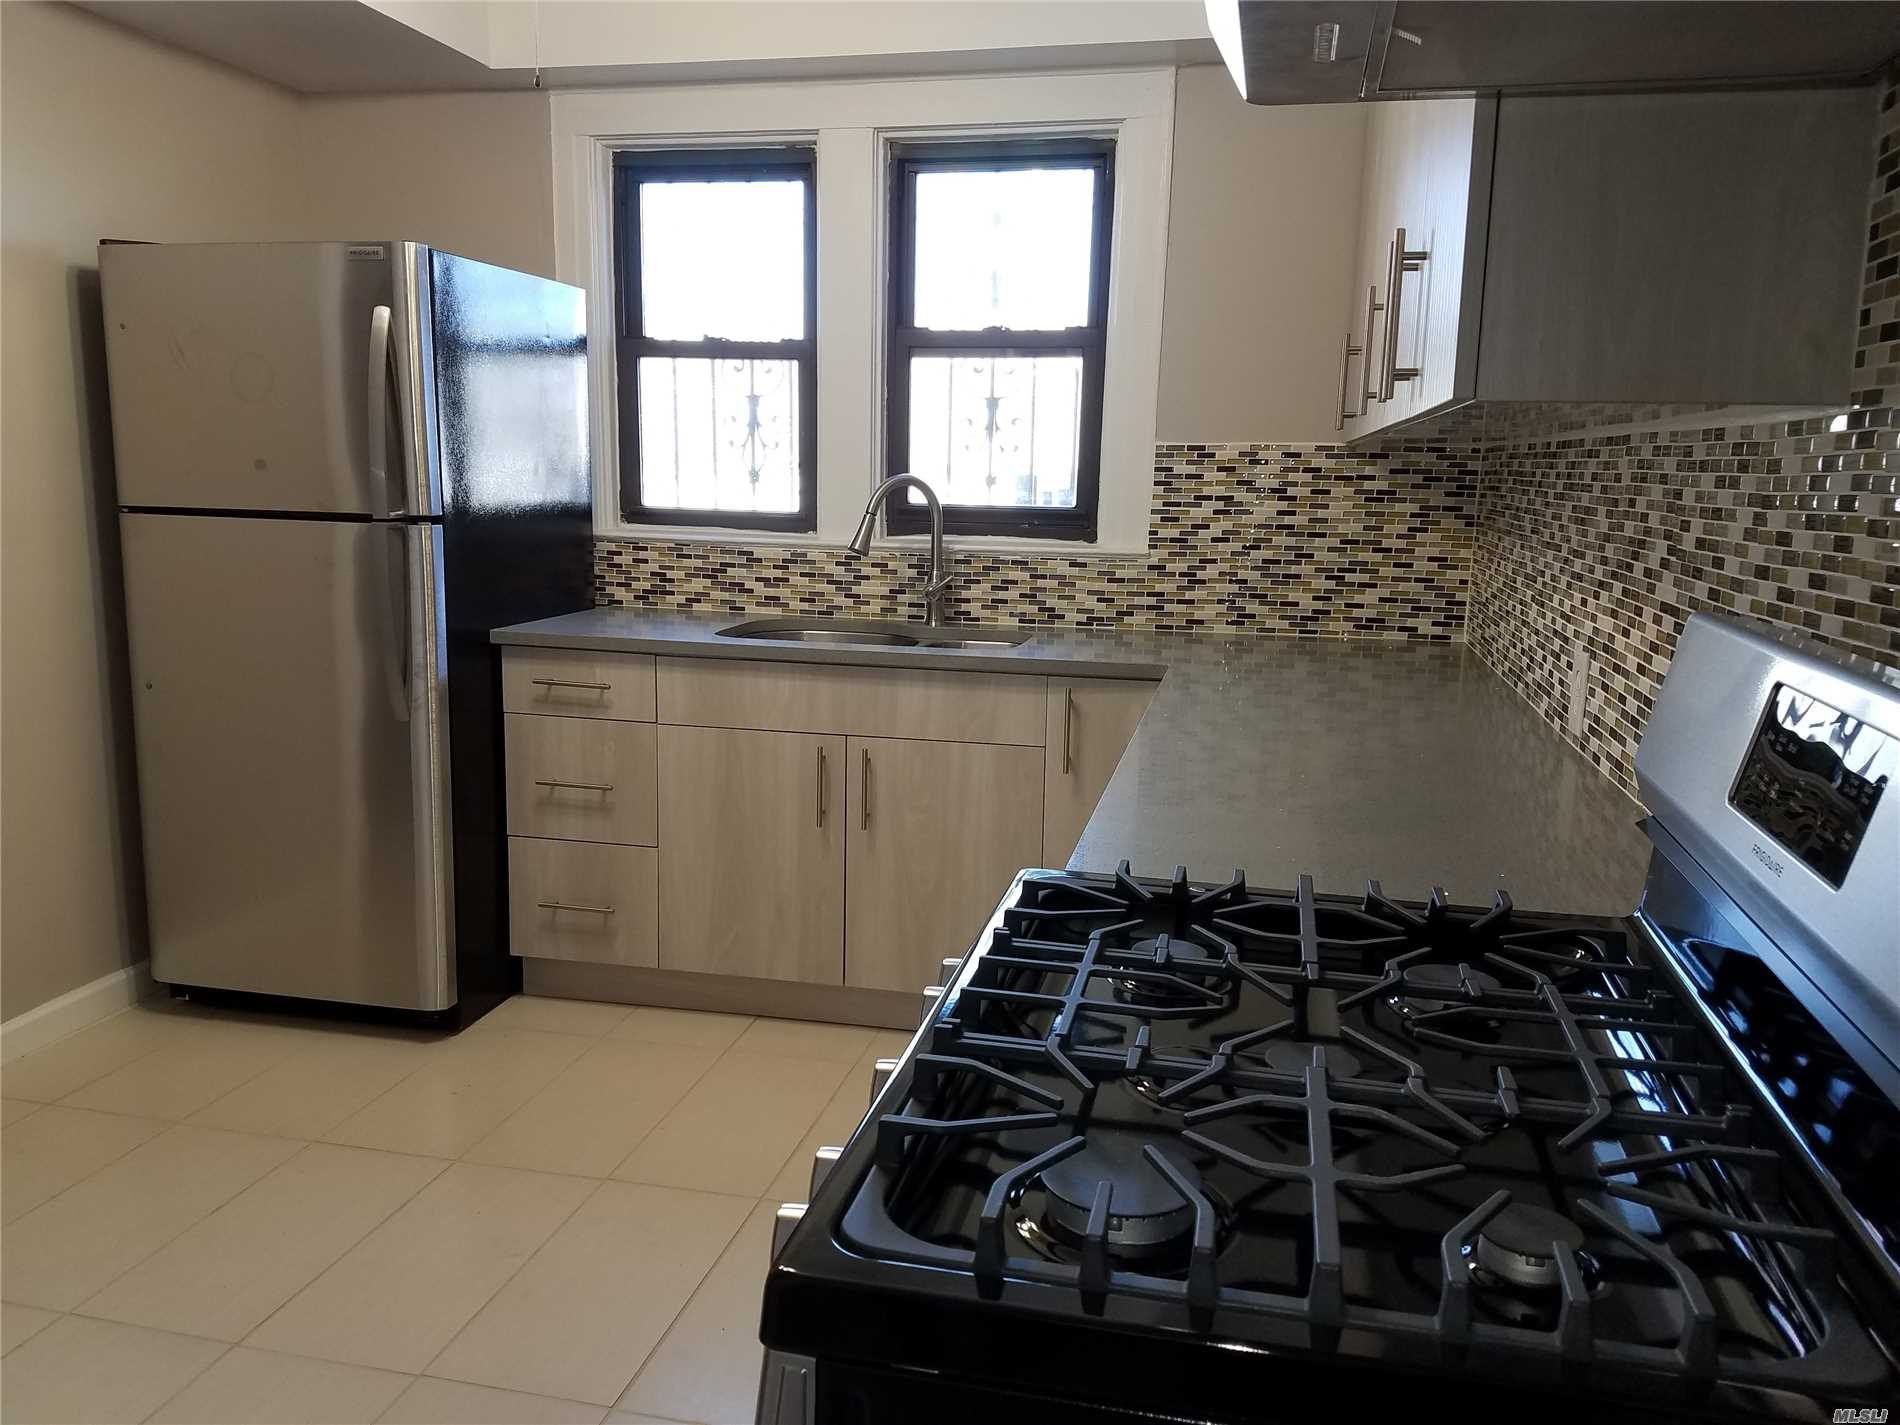 Fully Renovated House For Rent With Finish Basement And Parking. Brand New Kitchen State Of Art. Stainless Steel Appliances , Stone Countertop, And Working Fireplace. All Information Deemed Reliable, Must Be Re-Verified By Purchaser(S).